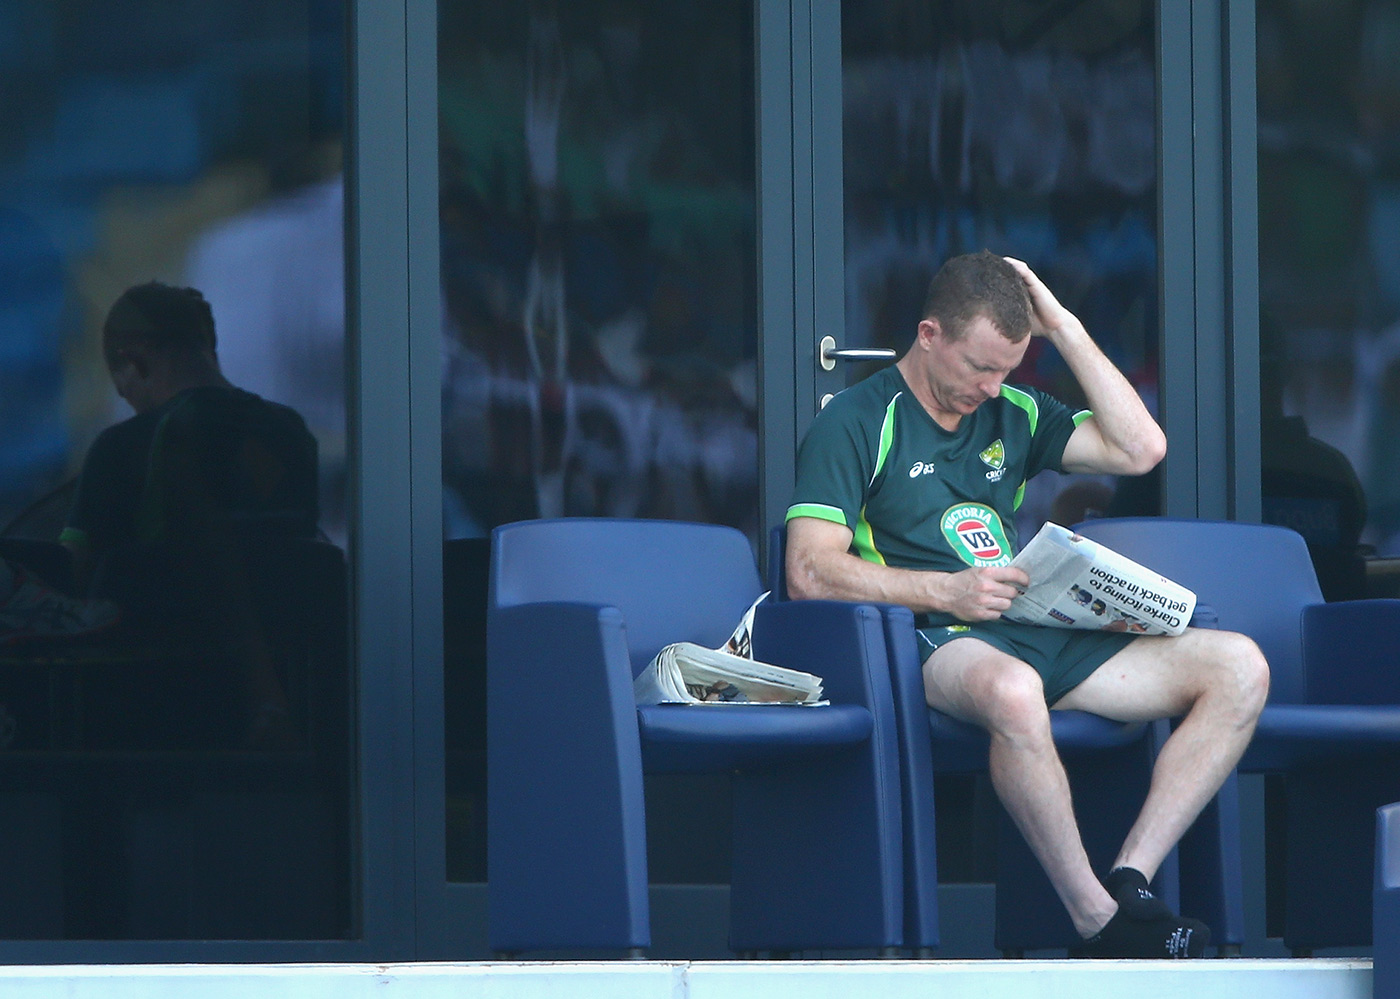 Chris Rogers reads the newspaper